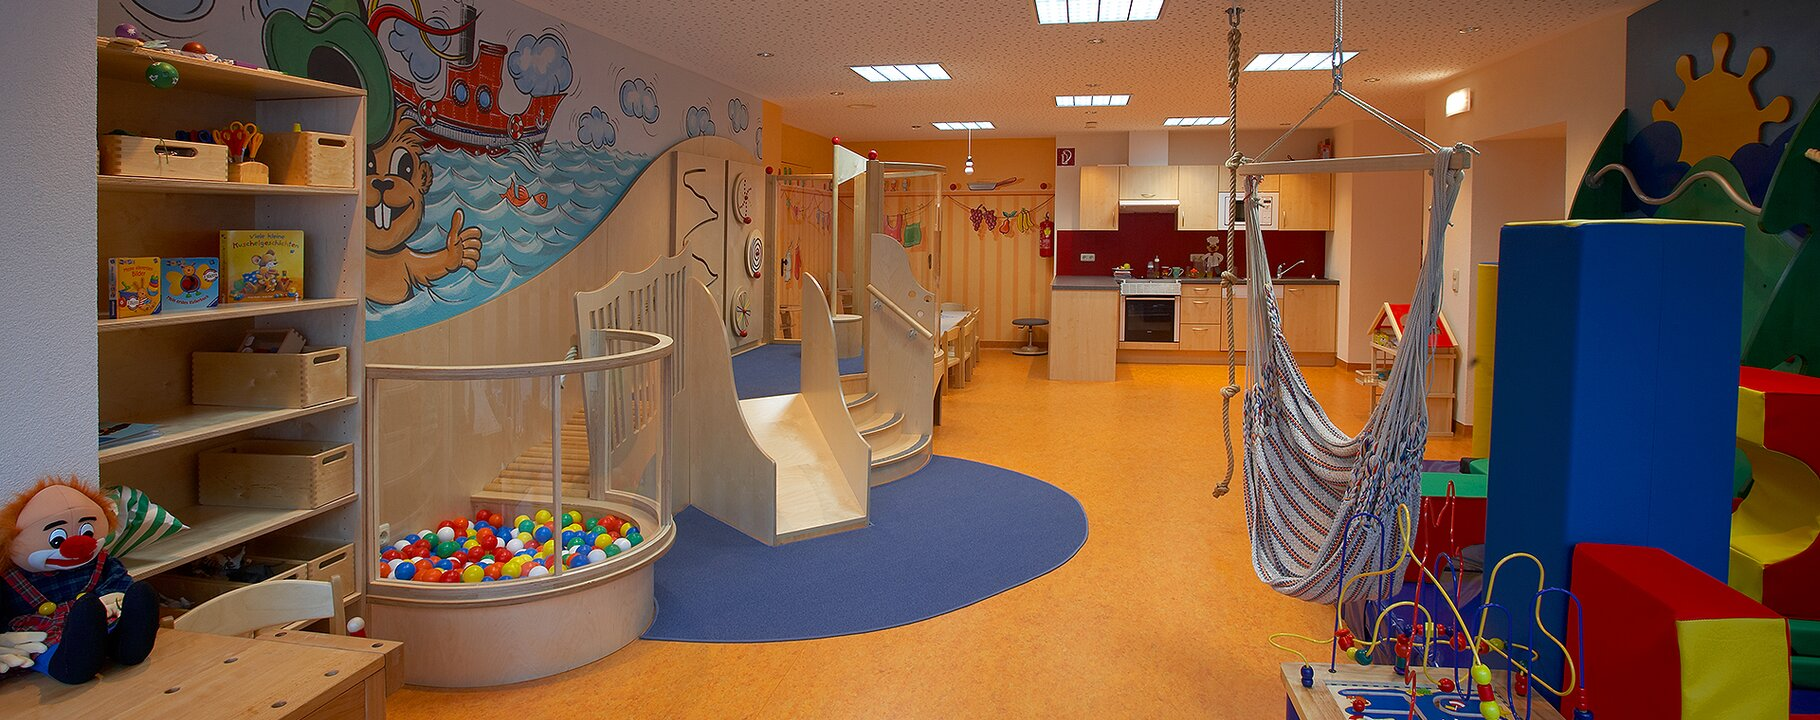 play room at the Murmli Crèche | © Serfaus-Fiss-Ladis/Tirol